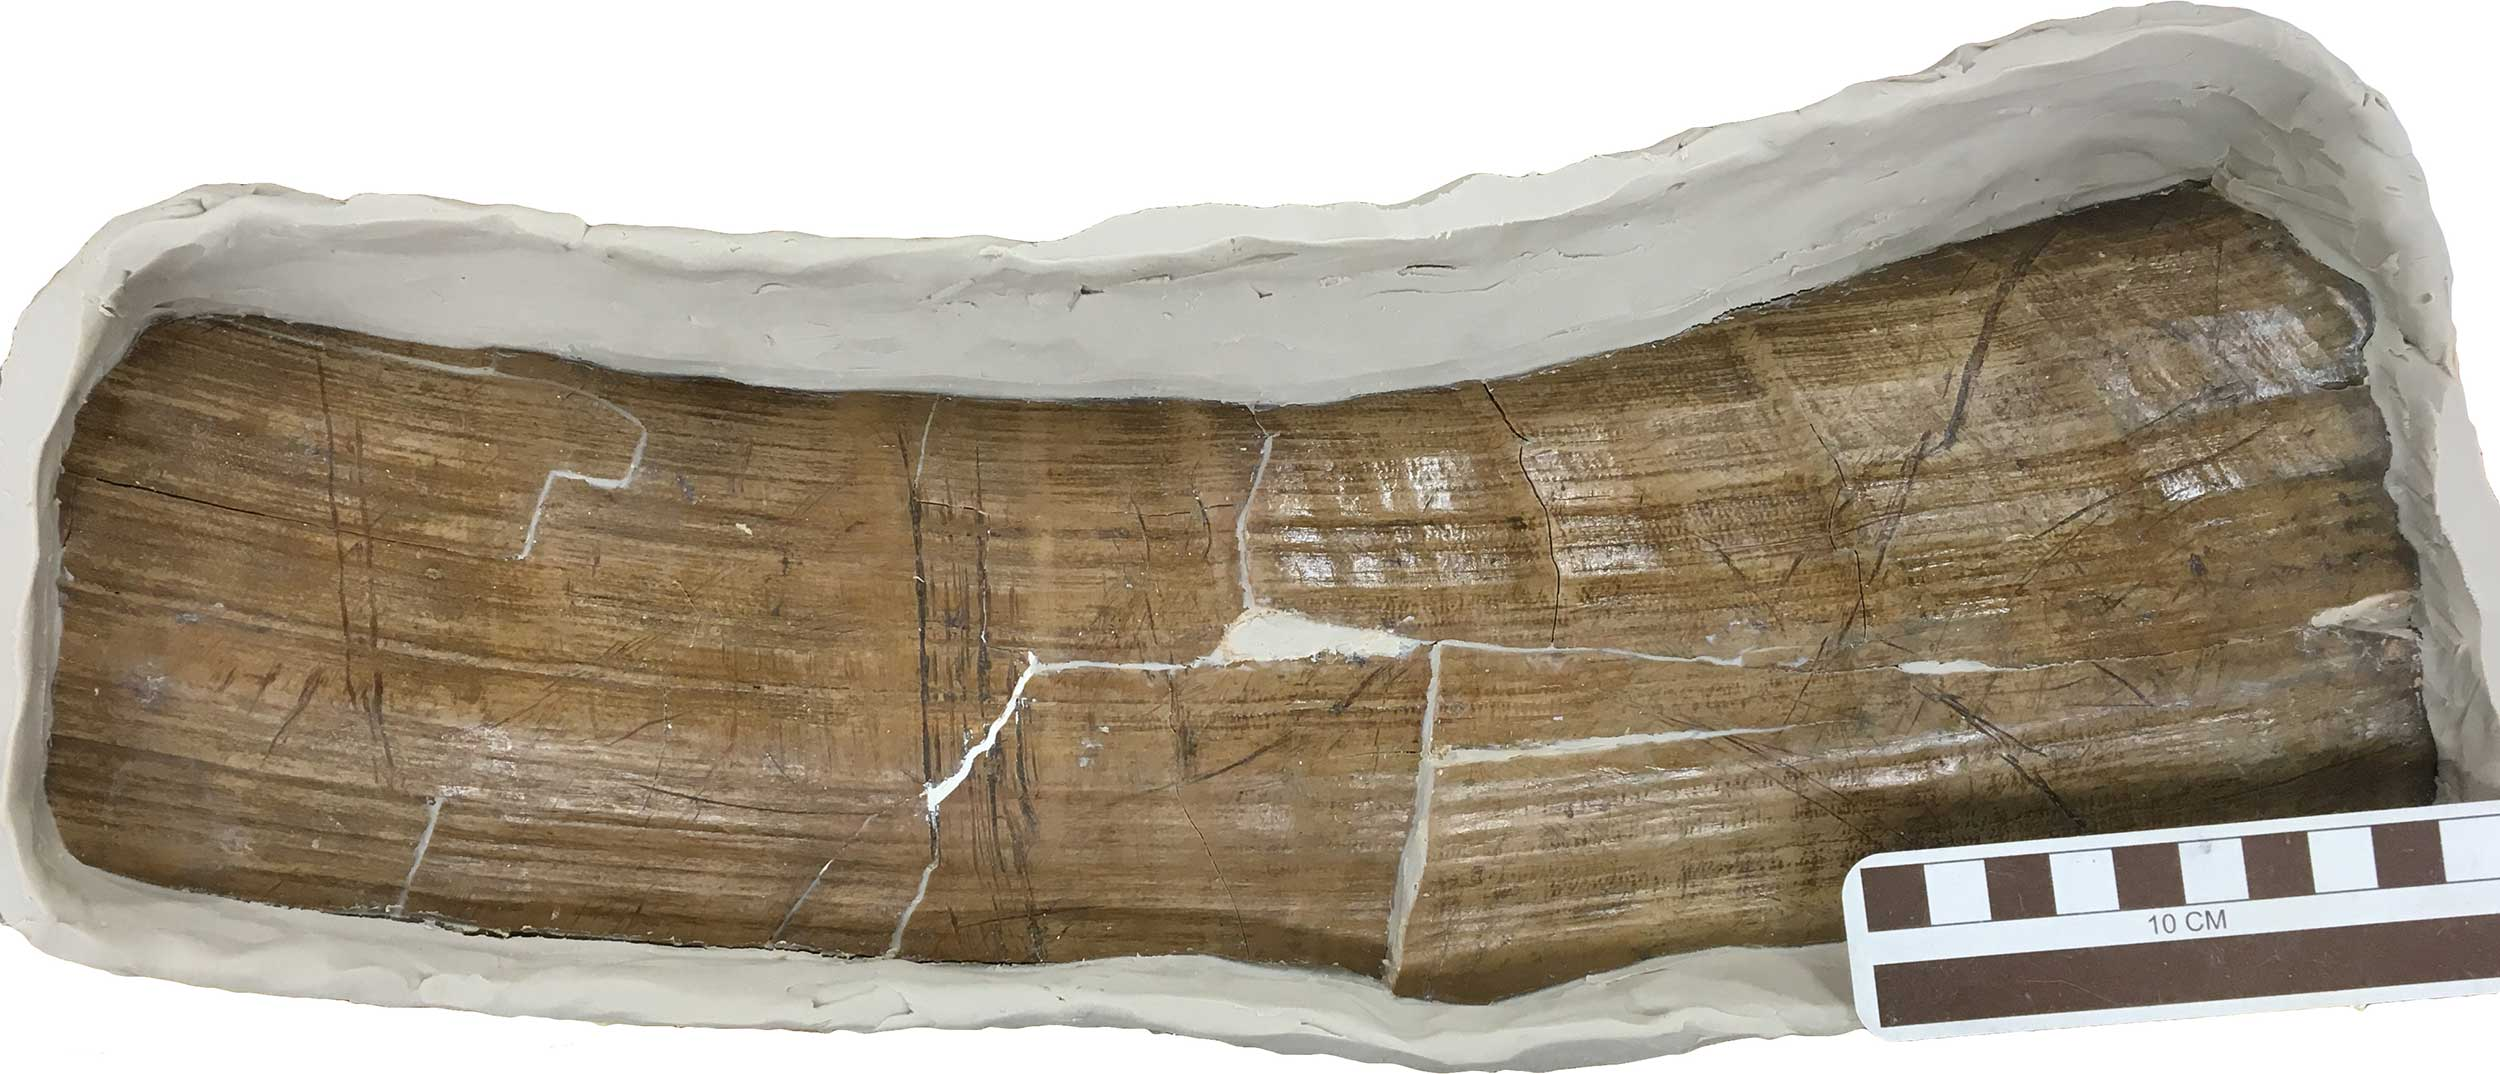 Part of the upper, outer surface of the tusk base, surrounded by modeling clay in preparation for pouring a silicone mold. At center-left is a group of deep, parallel, transverse marks made with a stone tool as part of the tusk removal process. Diagonal marks to the left and right of cut marks were made by bone fragments caught in the space between the tusk surface and the alveolar bone, when the tusk was rotated back and forth while attempting to withdraw it from the socket. Image credit: Daniel C. Fisher, University of Michigan Museum of Paleontology